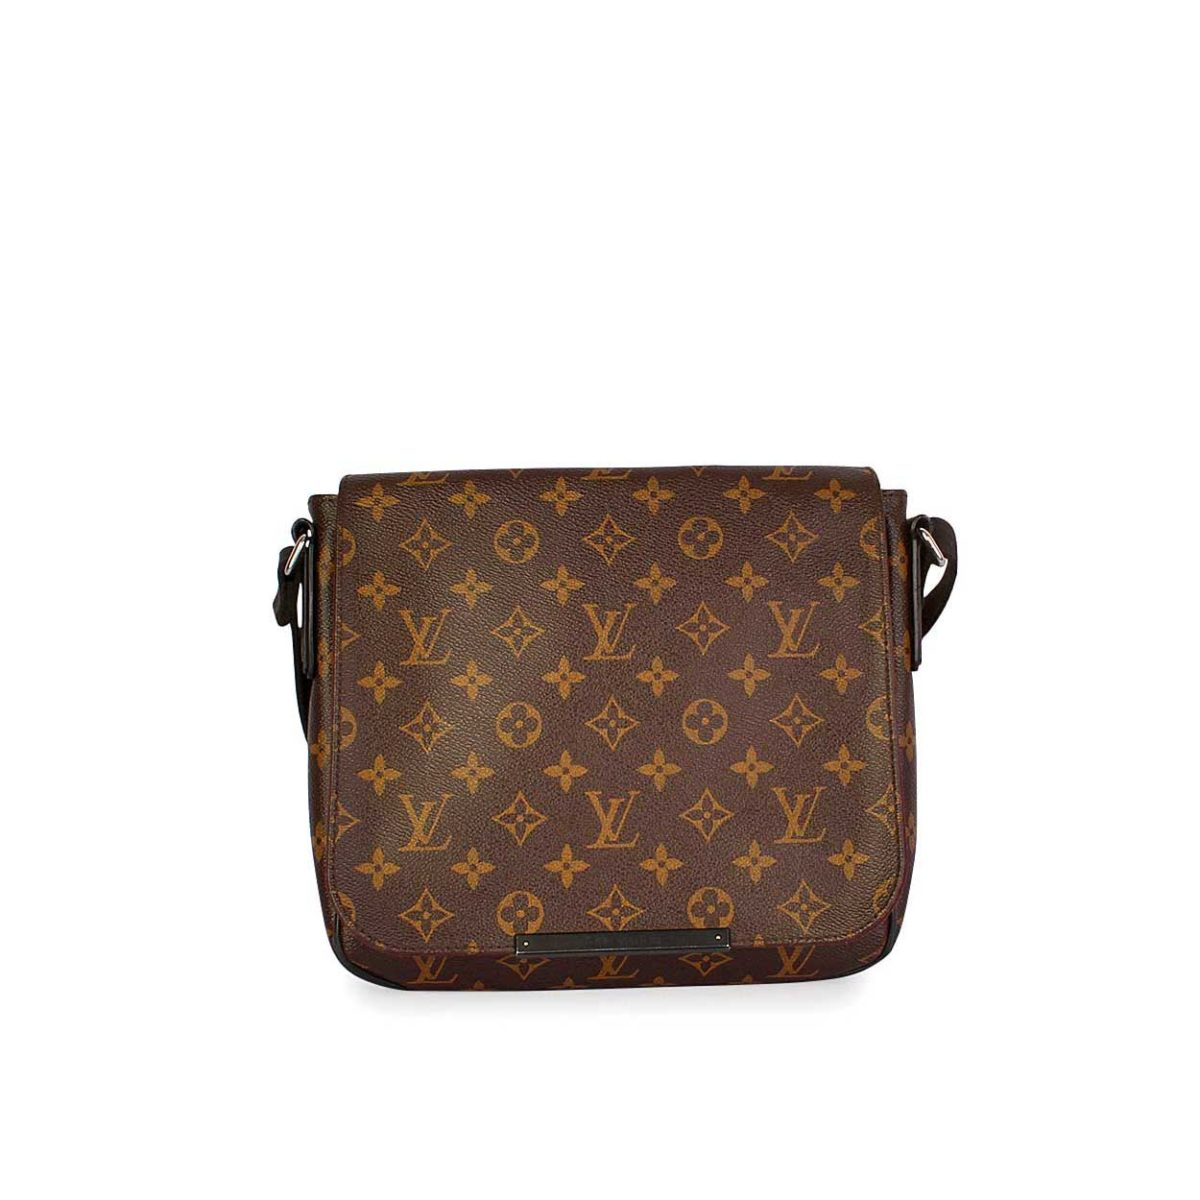 Louis Vuitton Monogram Bag Names Monogram Design